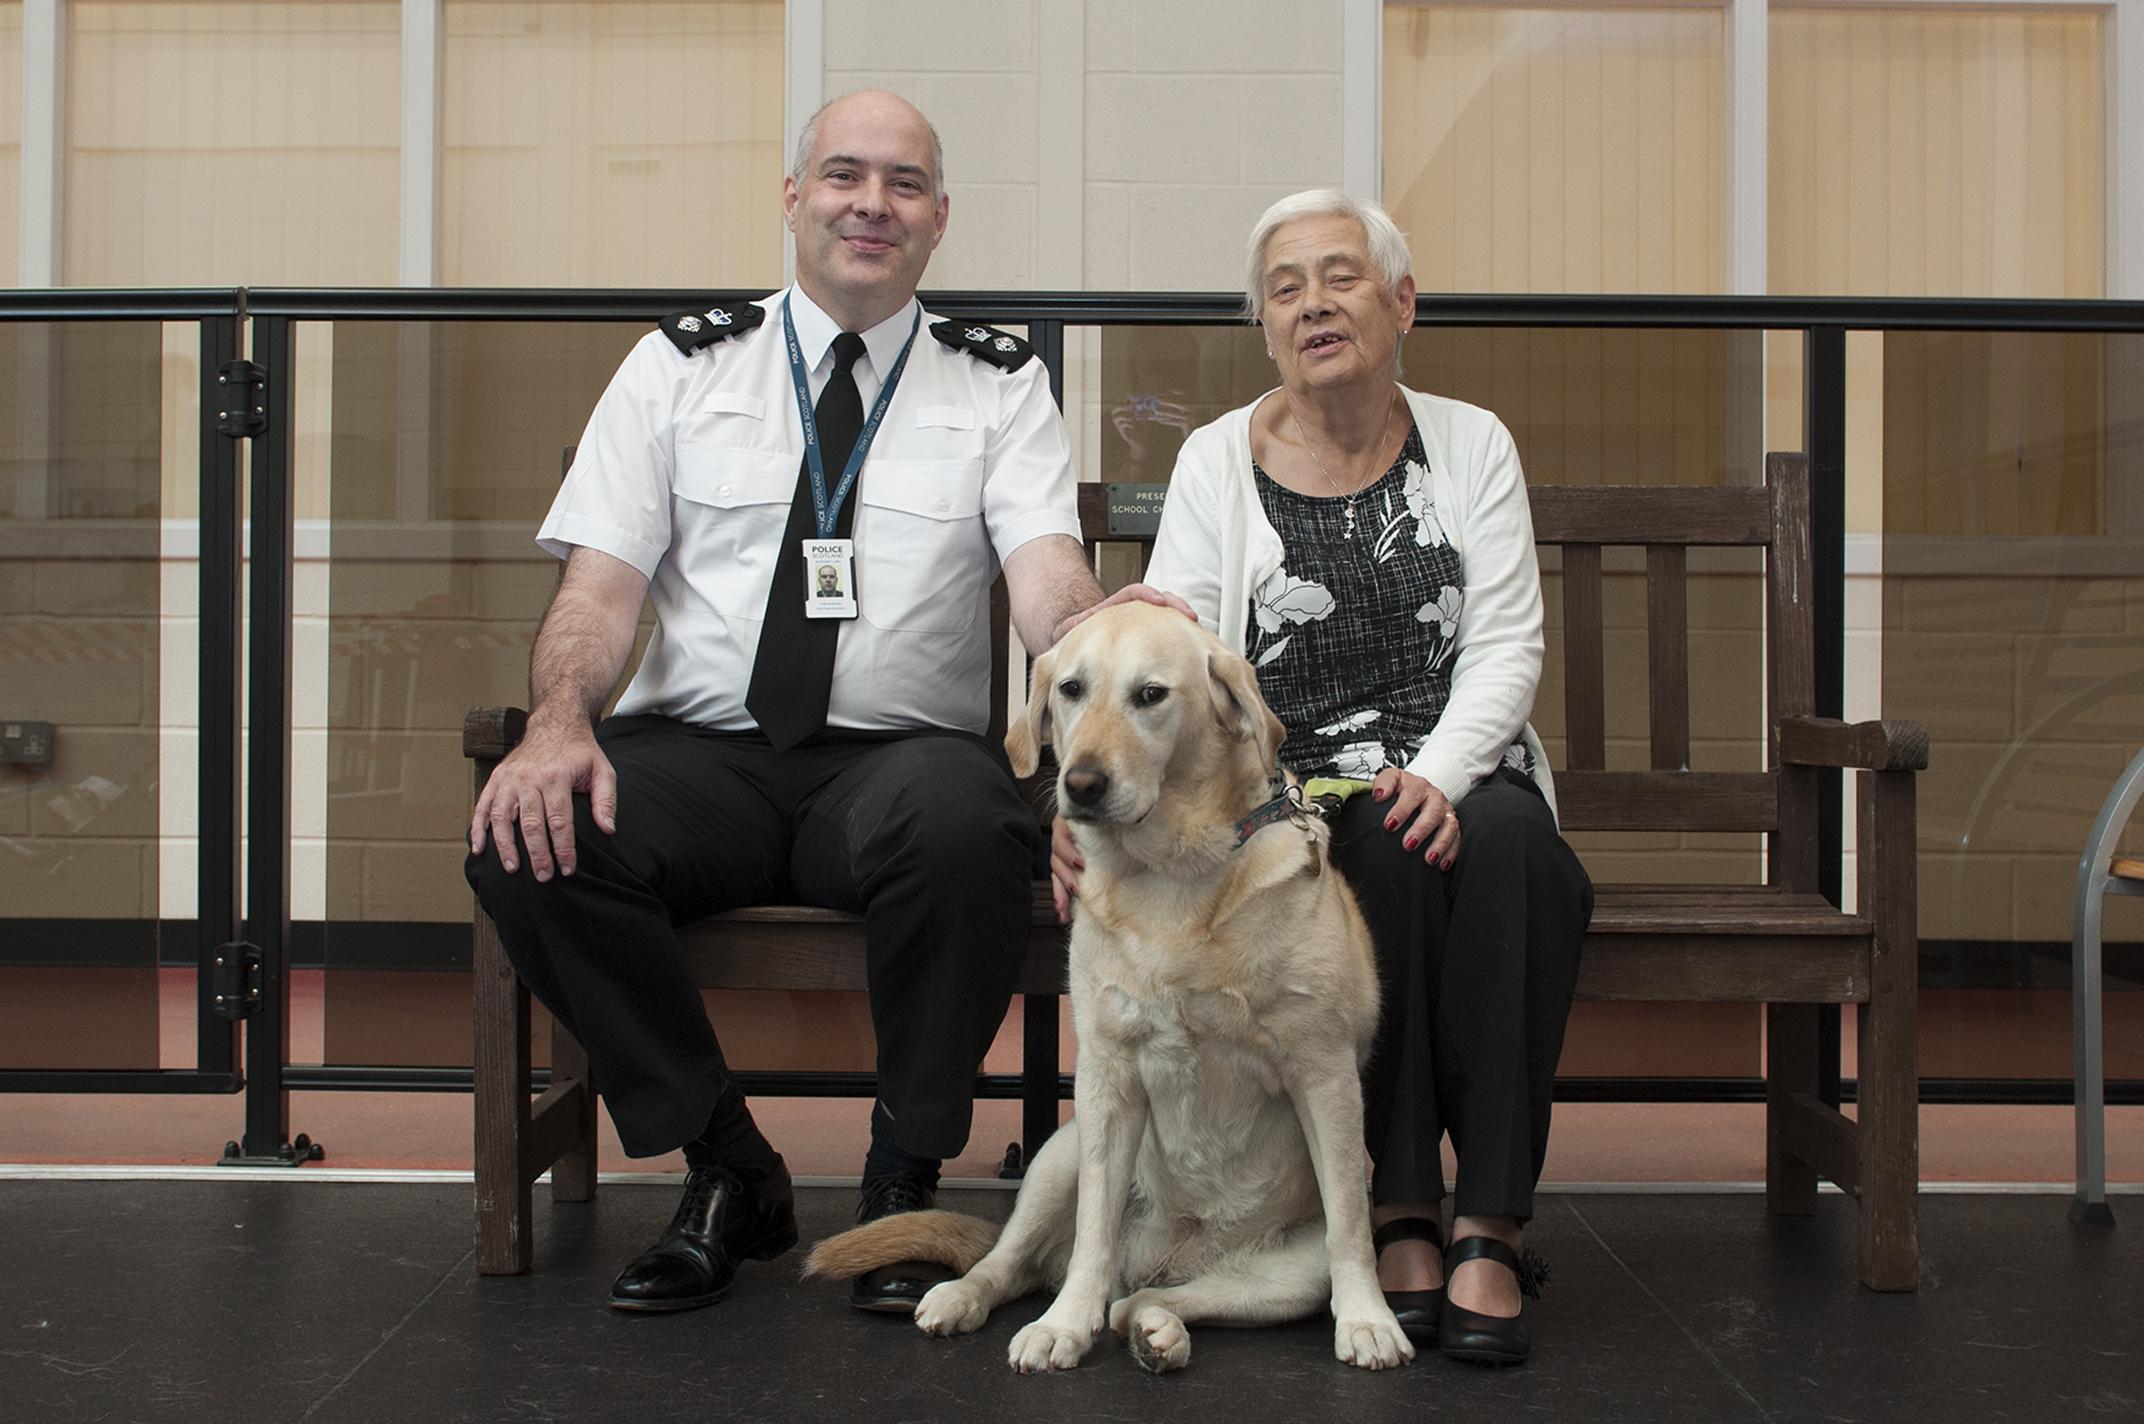 Chief Superintendent John McKenzie with Elaine McKenzie and her dog Una, who was attacked by another dog.